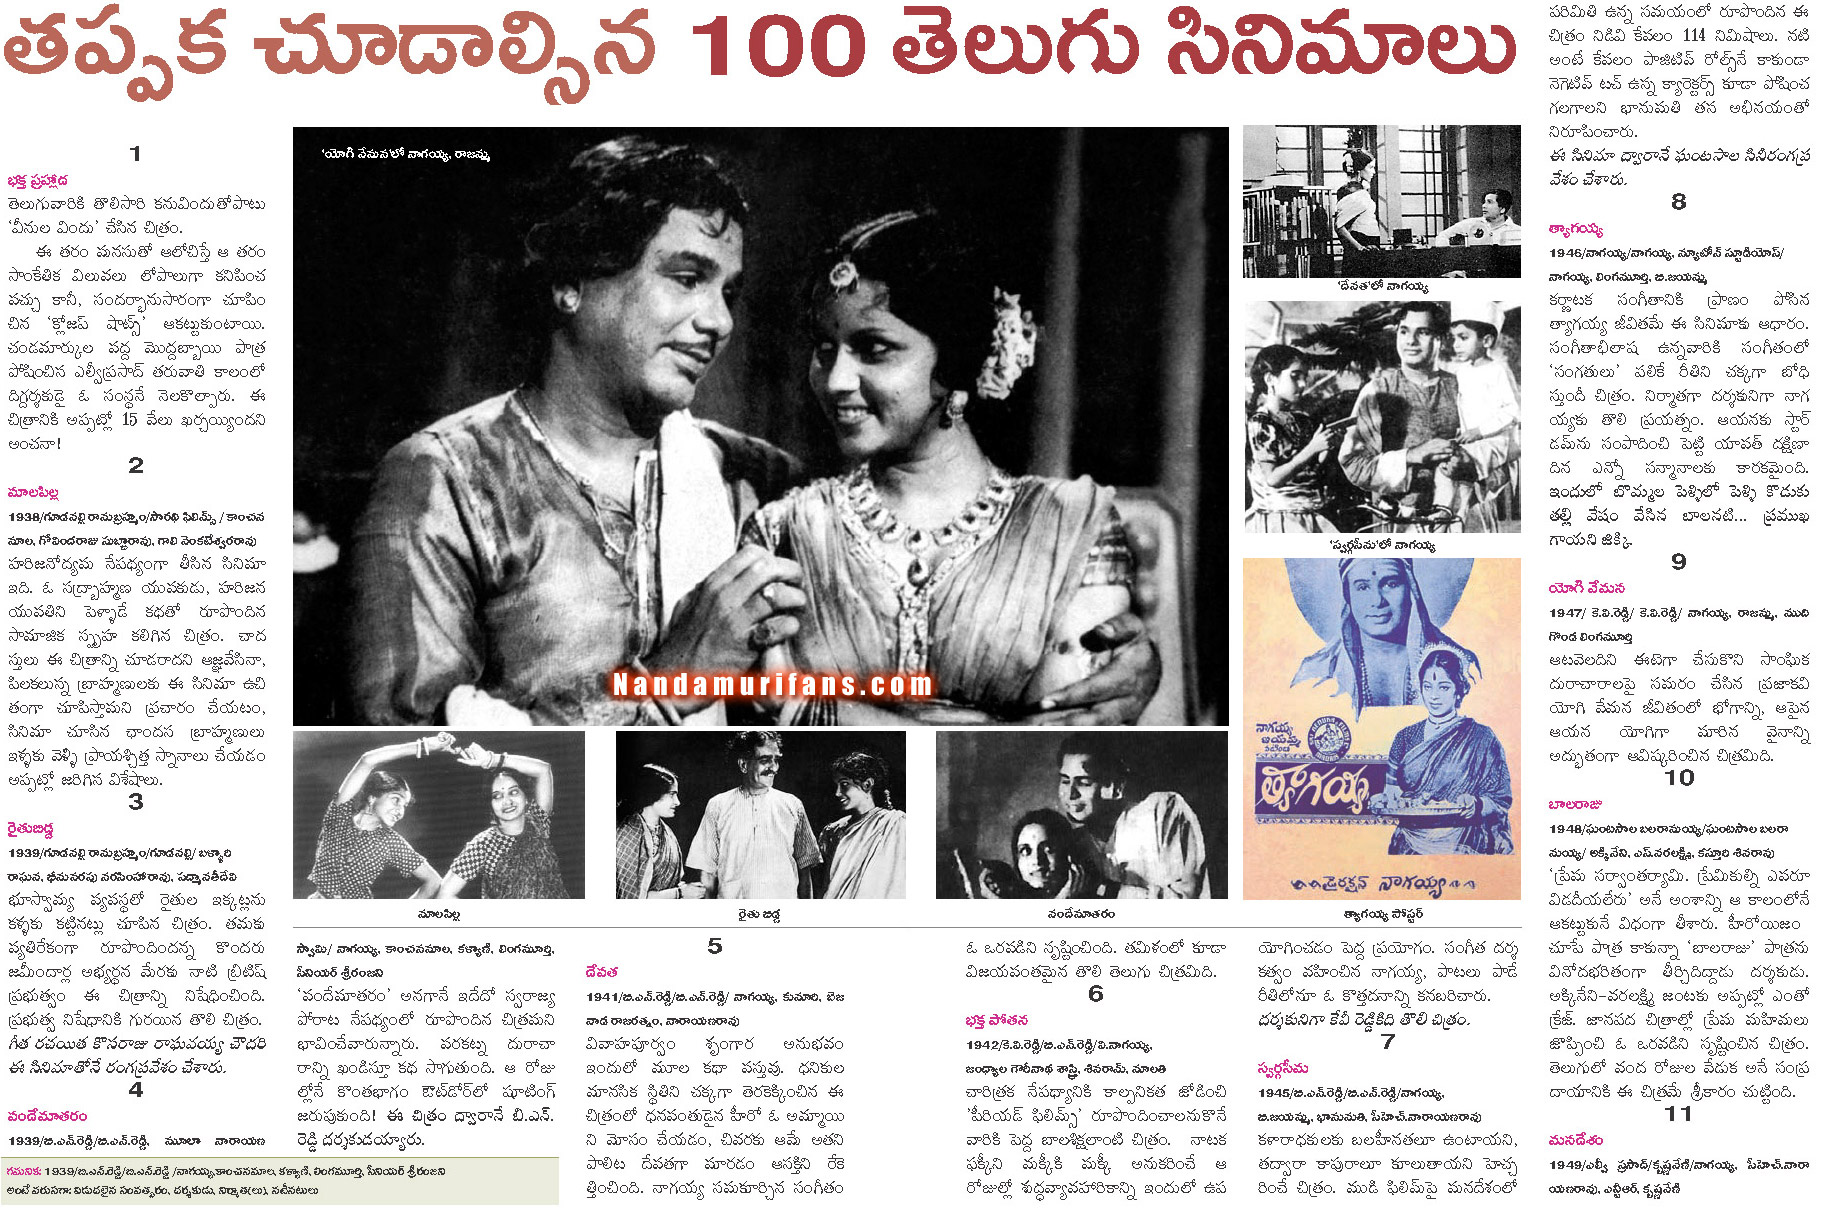 11 Old Telugu Movies Worth Watching Over and Over Again